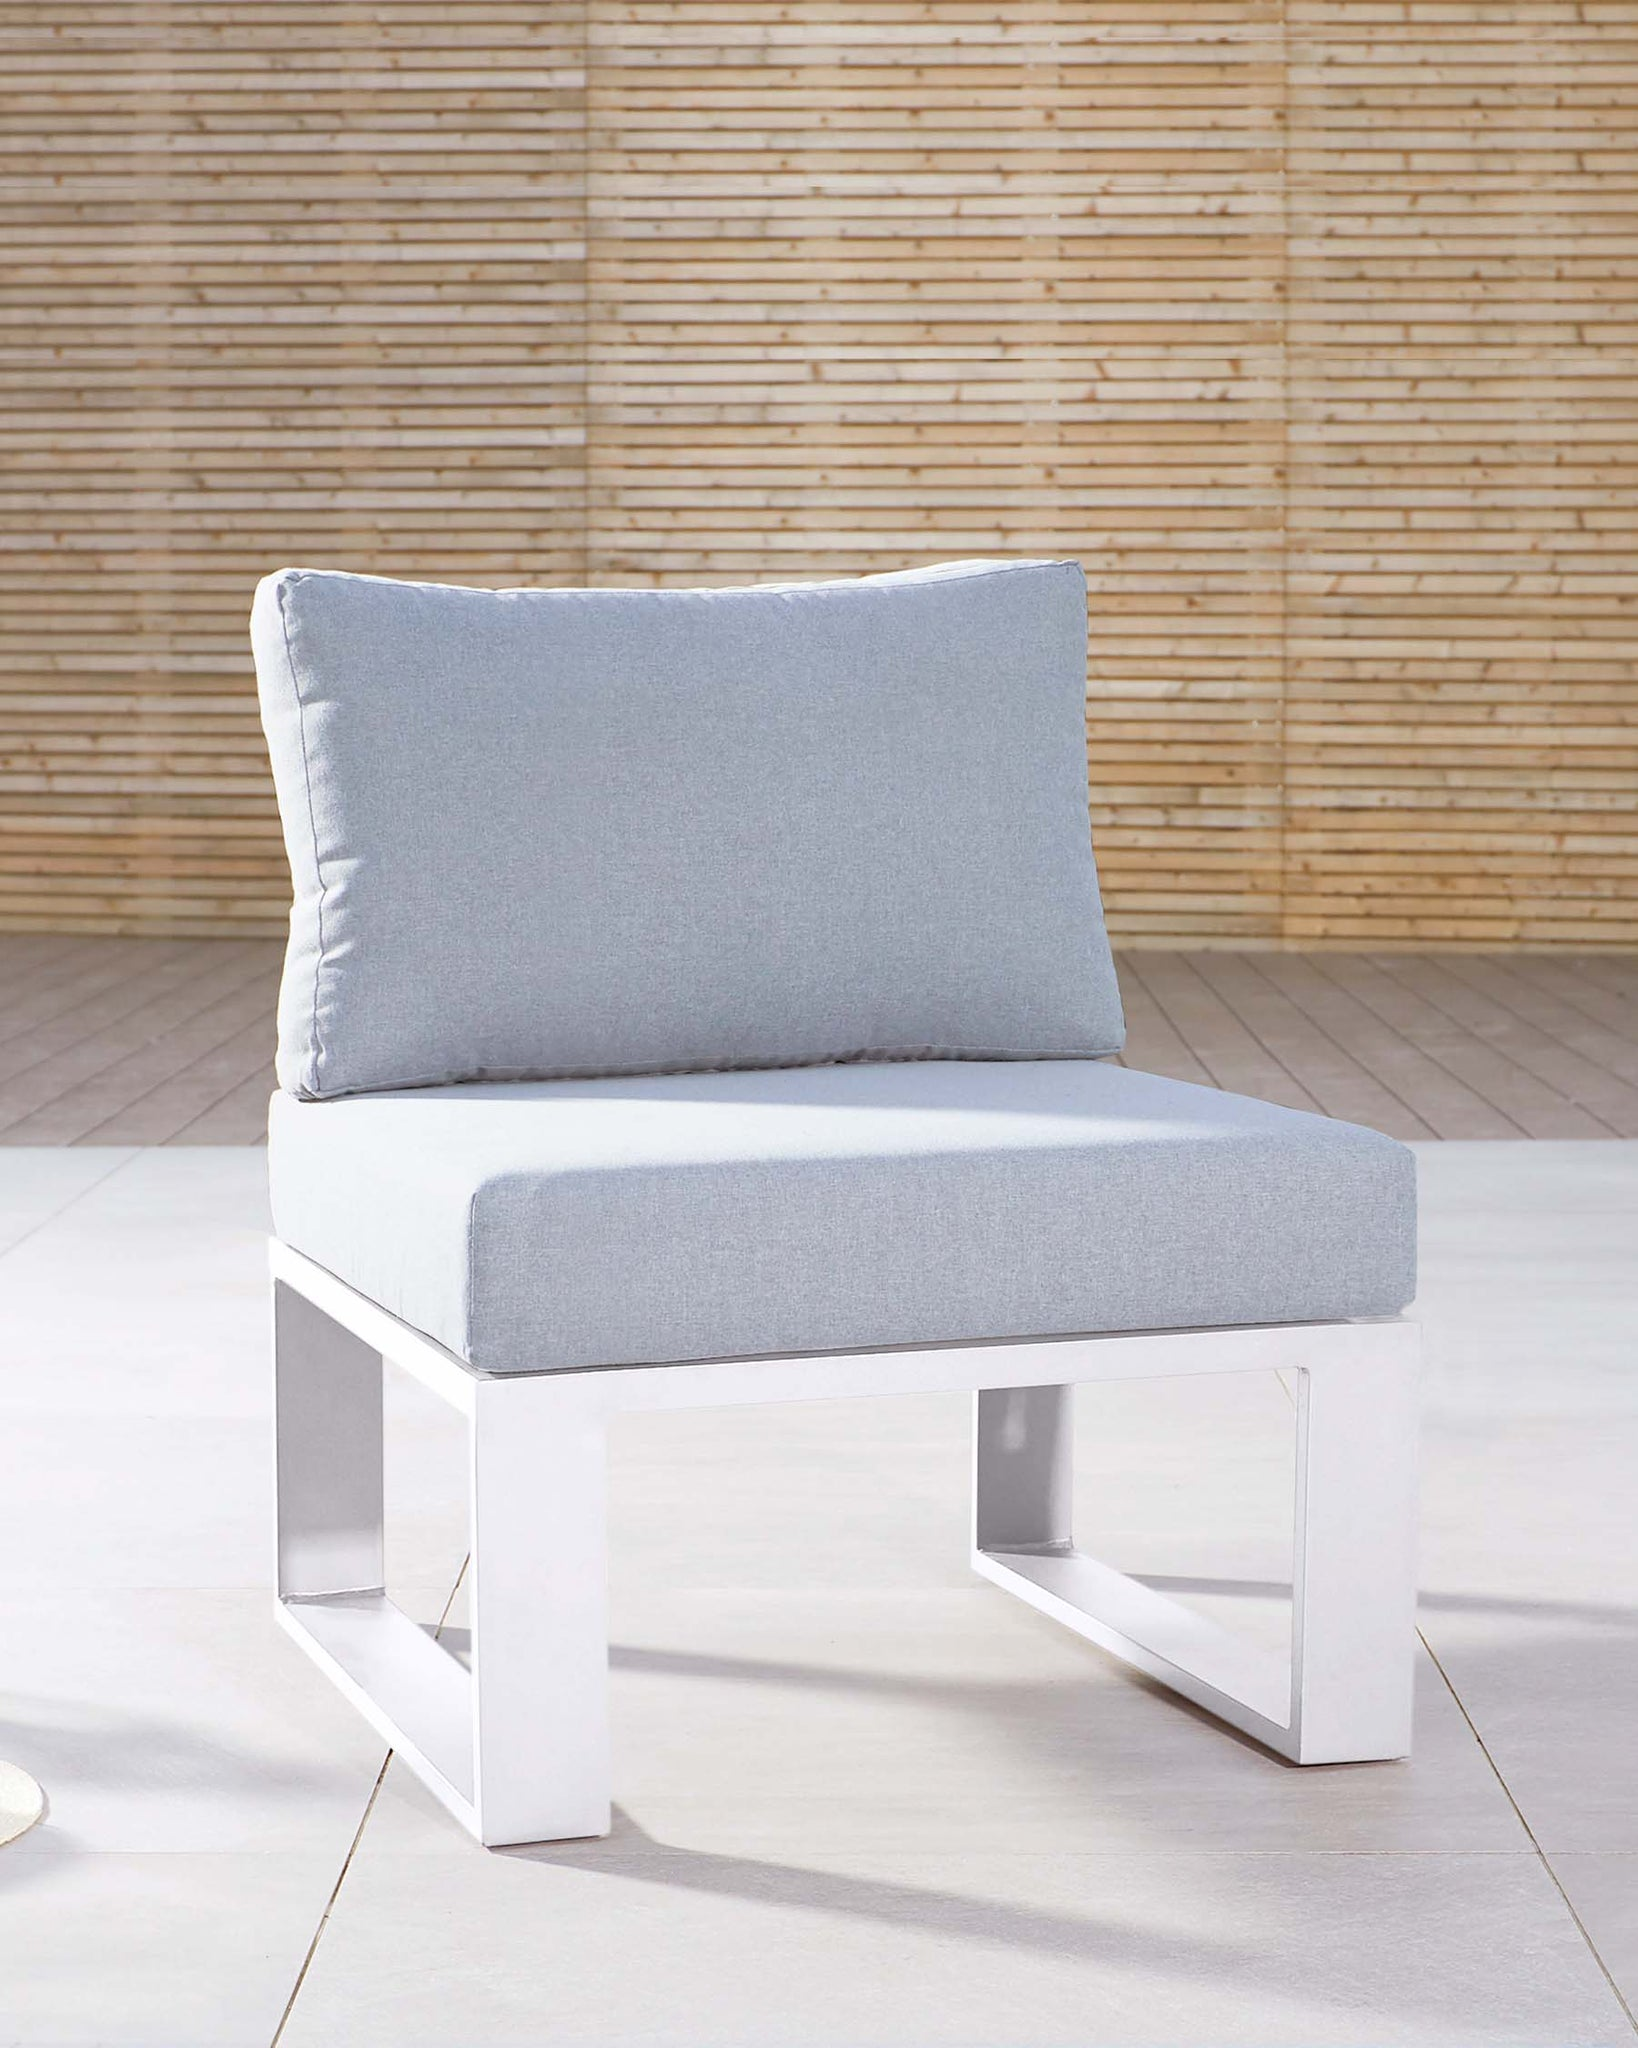 Savannah White Garden Single Modular Seat